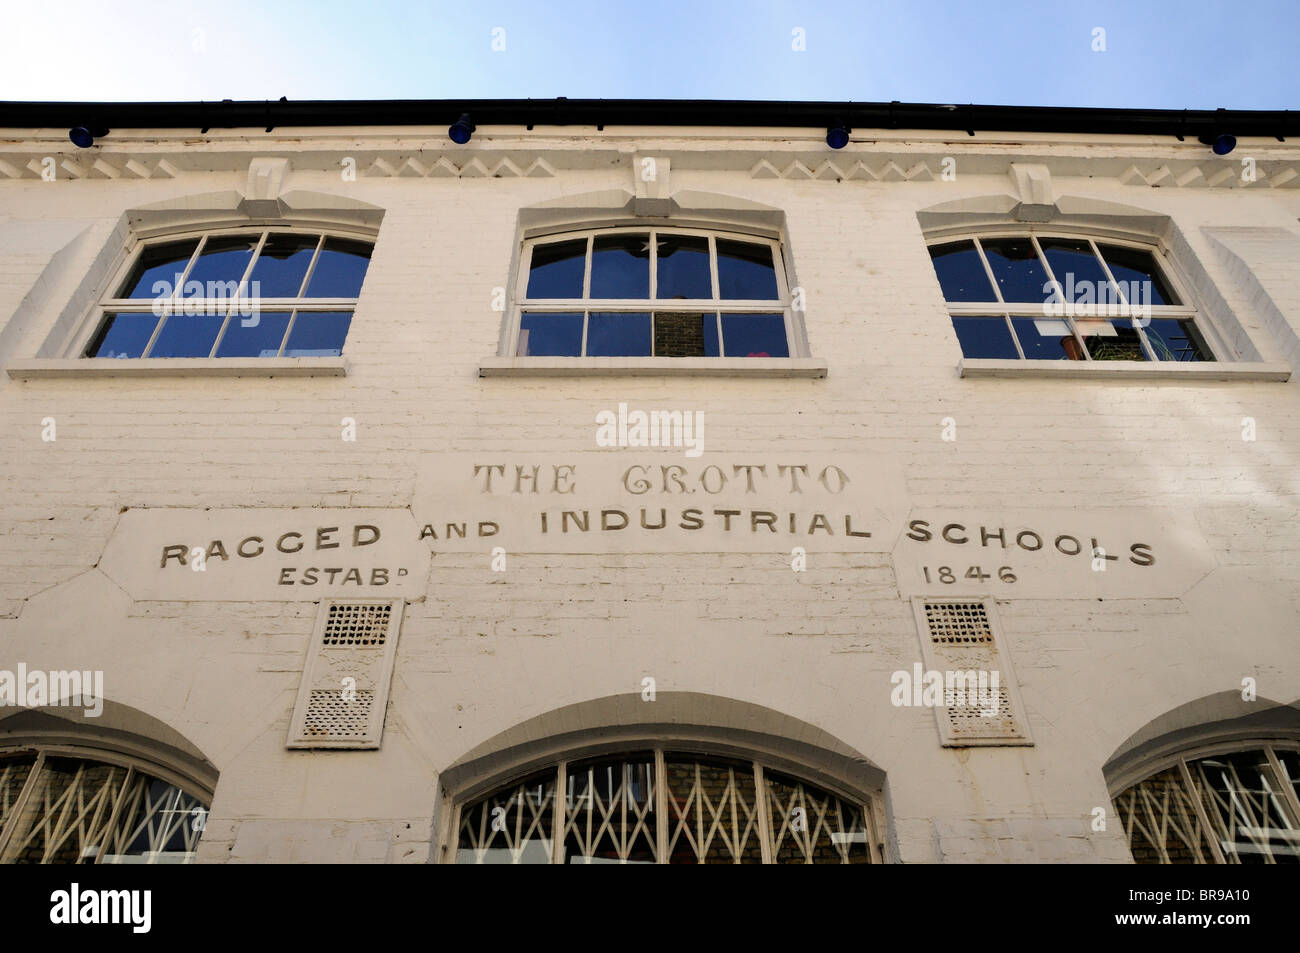 The Grotto Ragged and Industrial Schools Marylebone London England UK - Stock Image